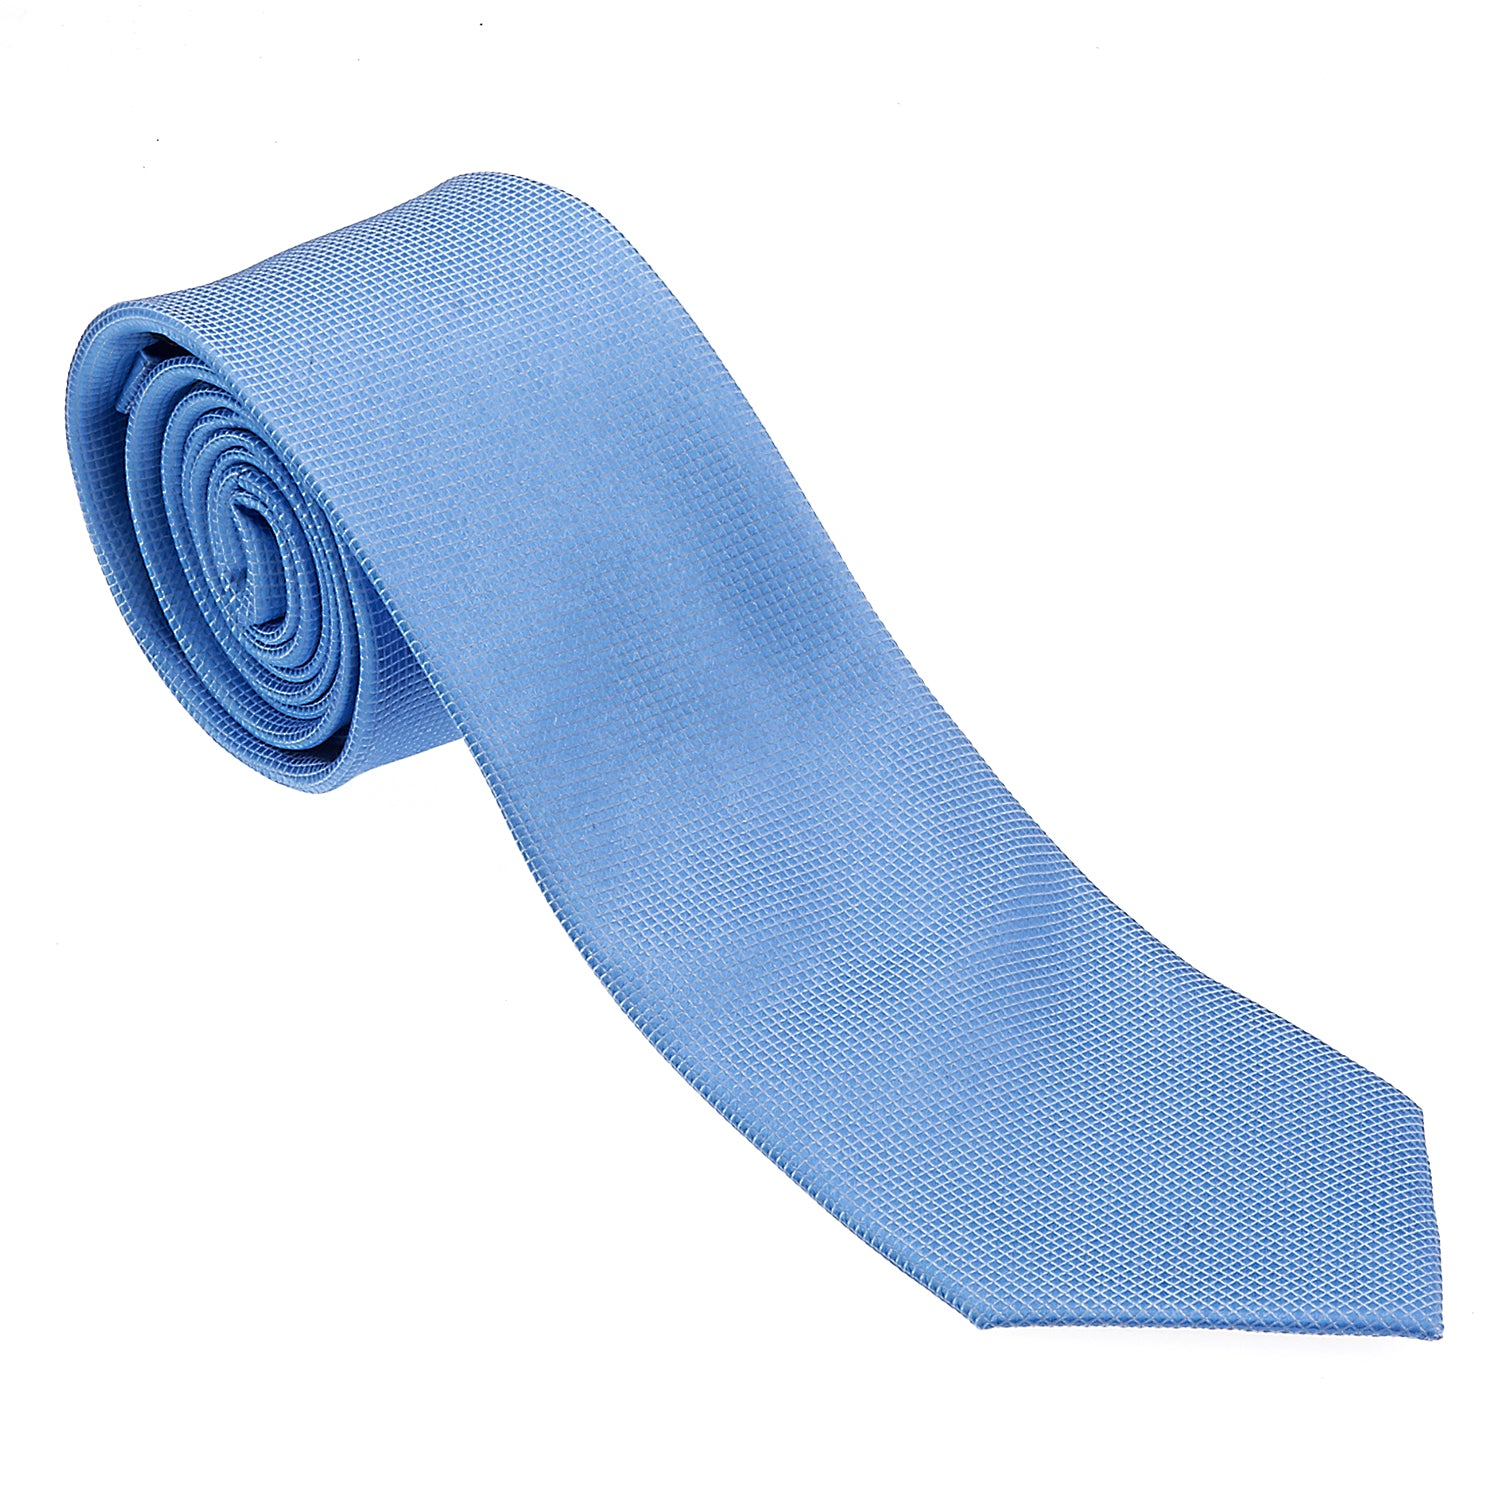 Light Blue Tie-The Suit Spot-Wedding Suits-Wedding Tuxedos-Groomsmen Suits-Groomsmen Tuxedos-Slim Fit Suits-Slim Fit Tuxedos-Online wedding suits